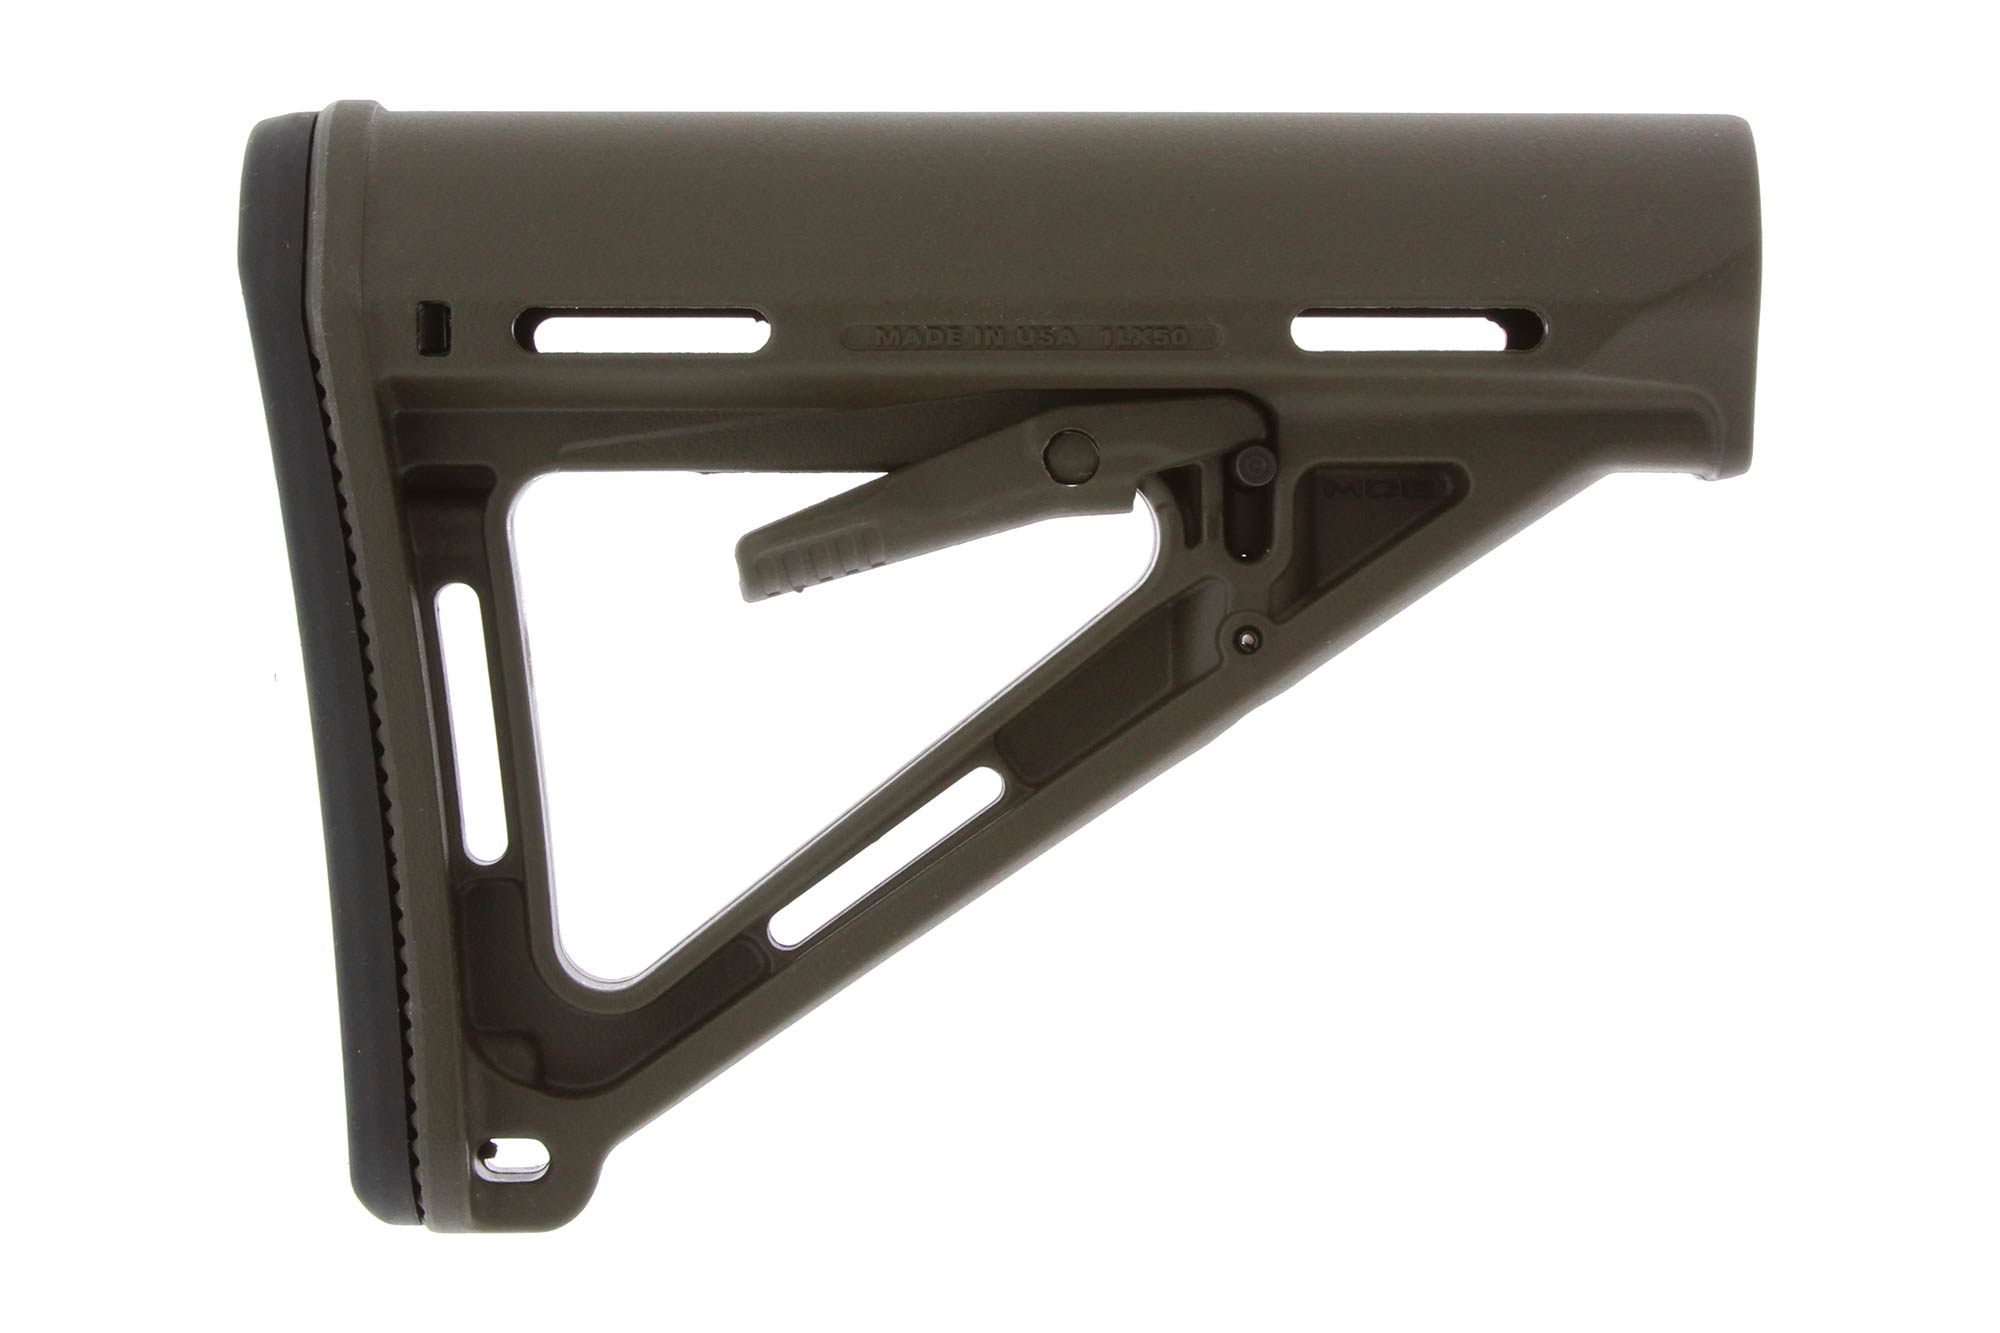 The Magpul OD Green MOE Carbine Stock features a removable rubber buttpad